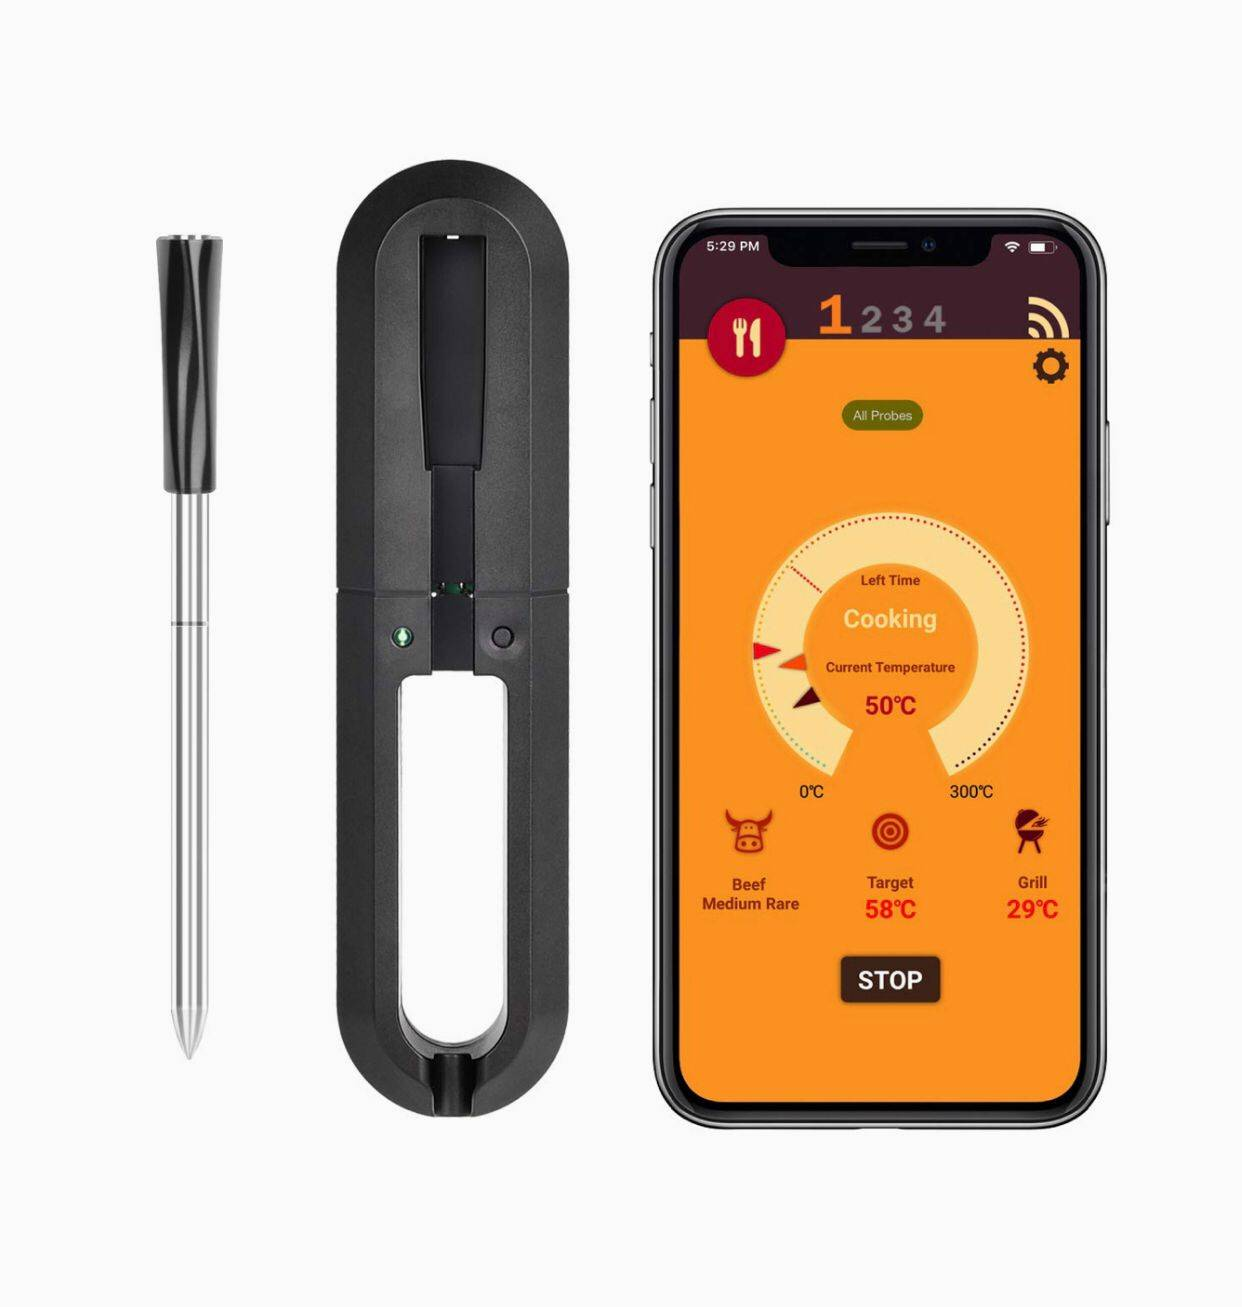 Bluetooth Daging Termometer Nirkabel Termometer Daging Bluetooth BBQ untuk Perokok, Smart Remote Digital Memasak